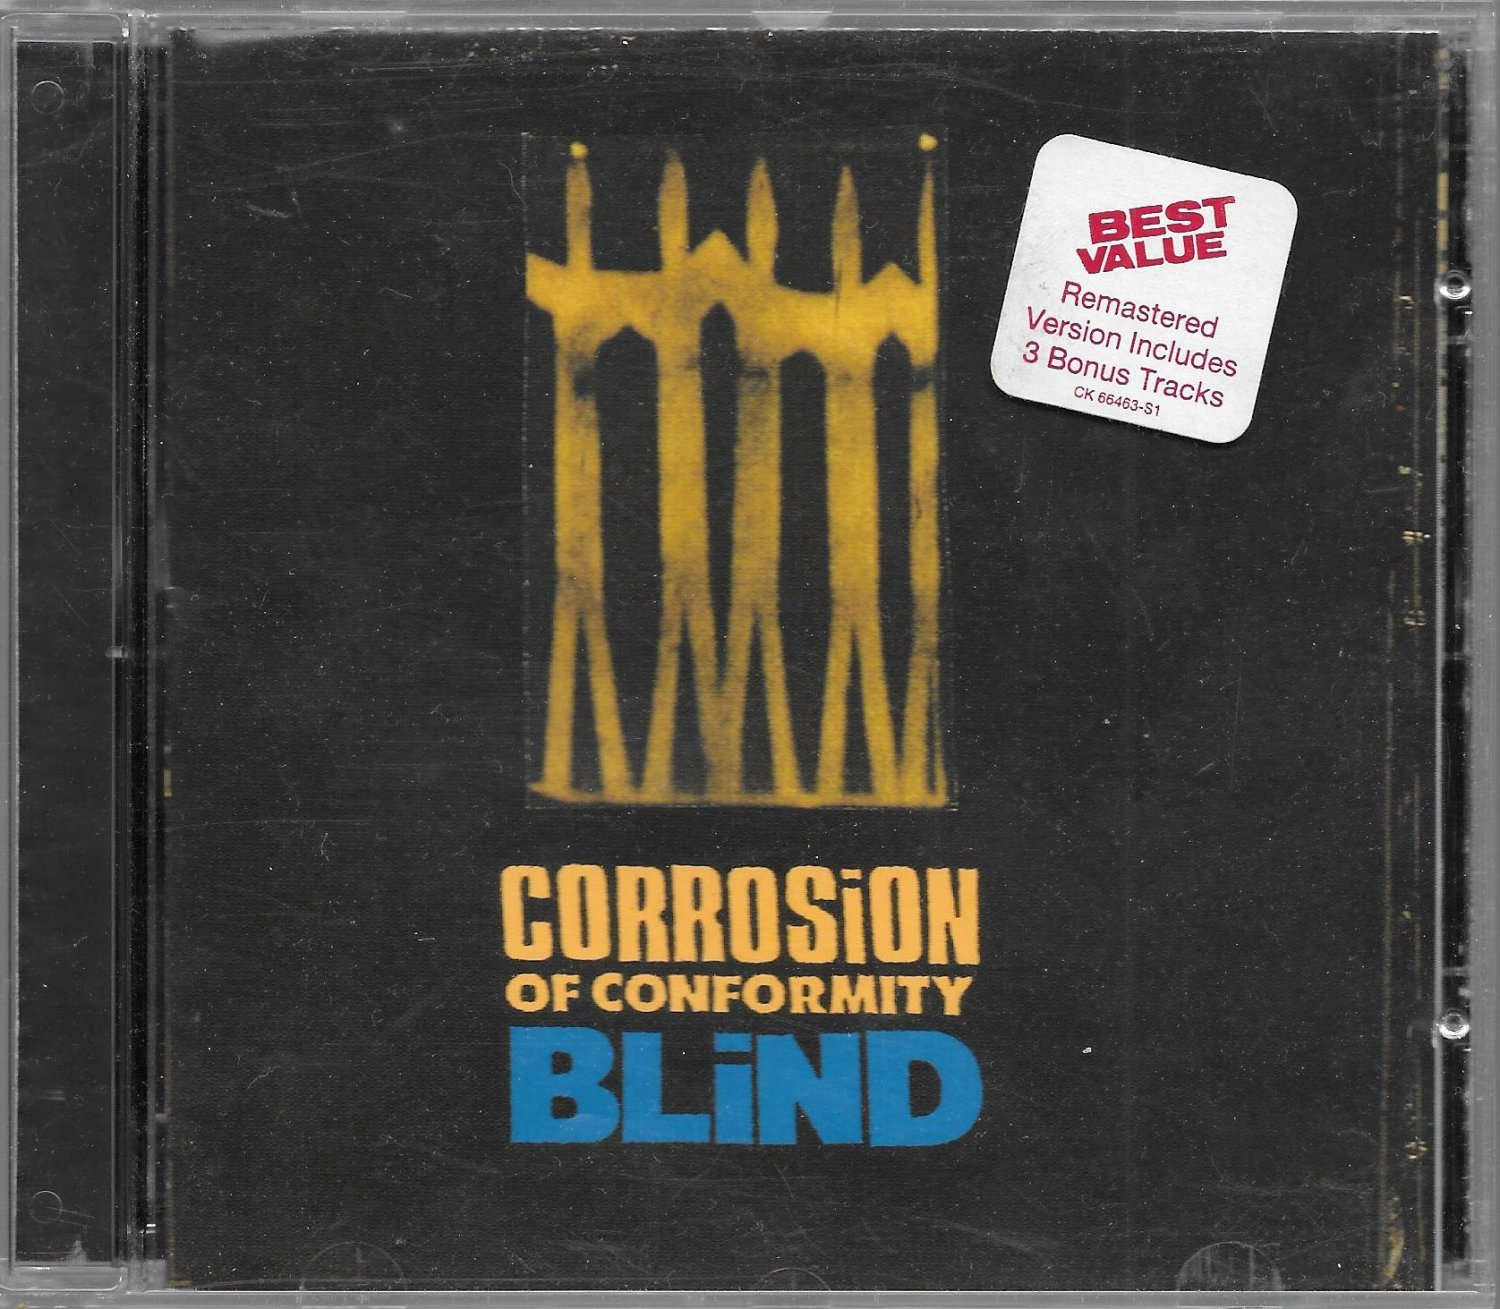 CORROSION OF CONFORMITY BLIND (REMASTERED)